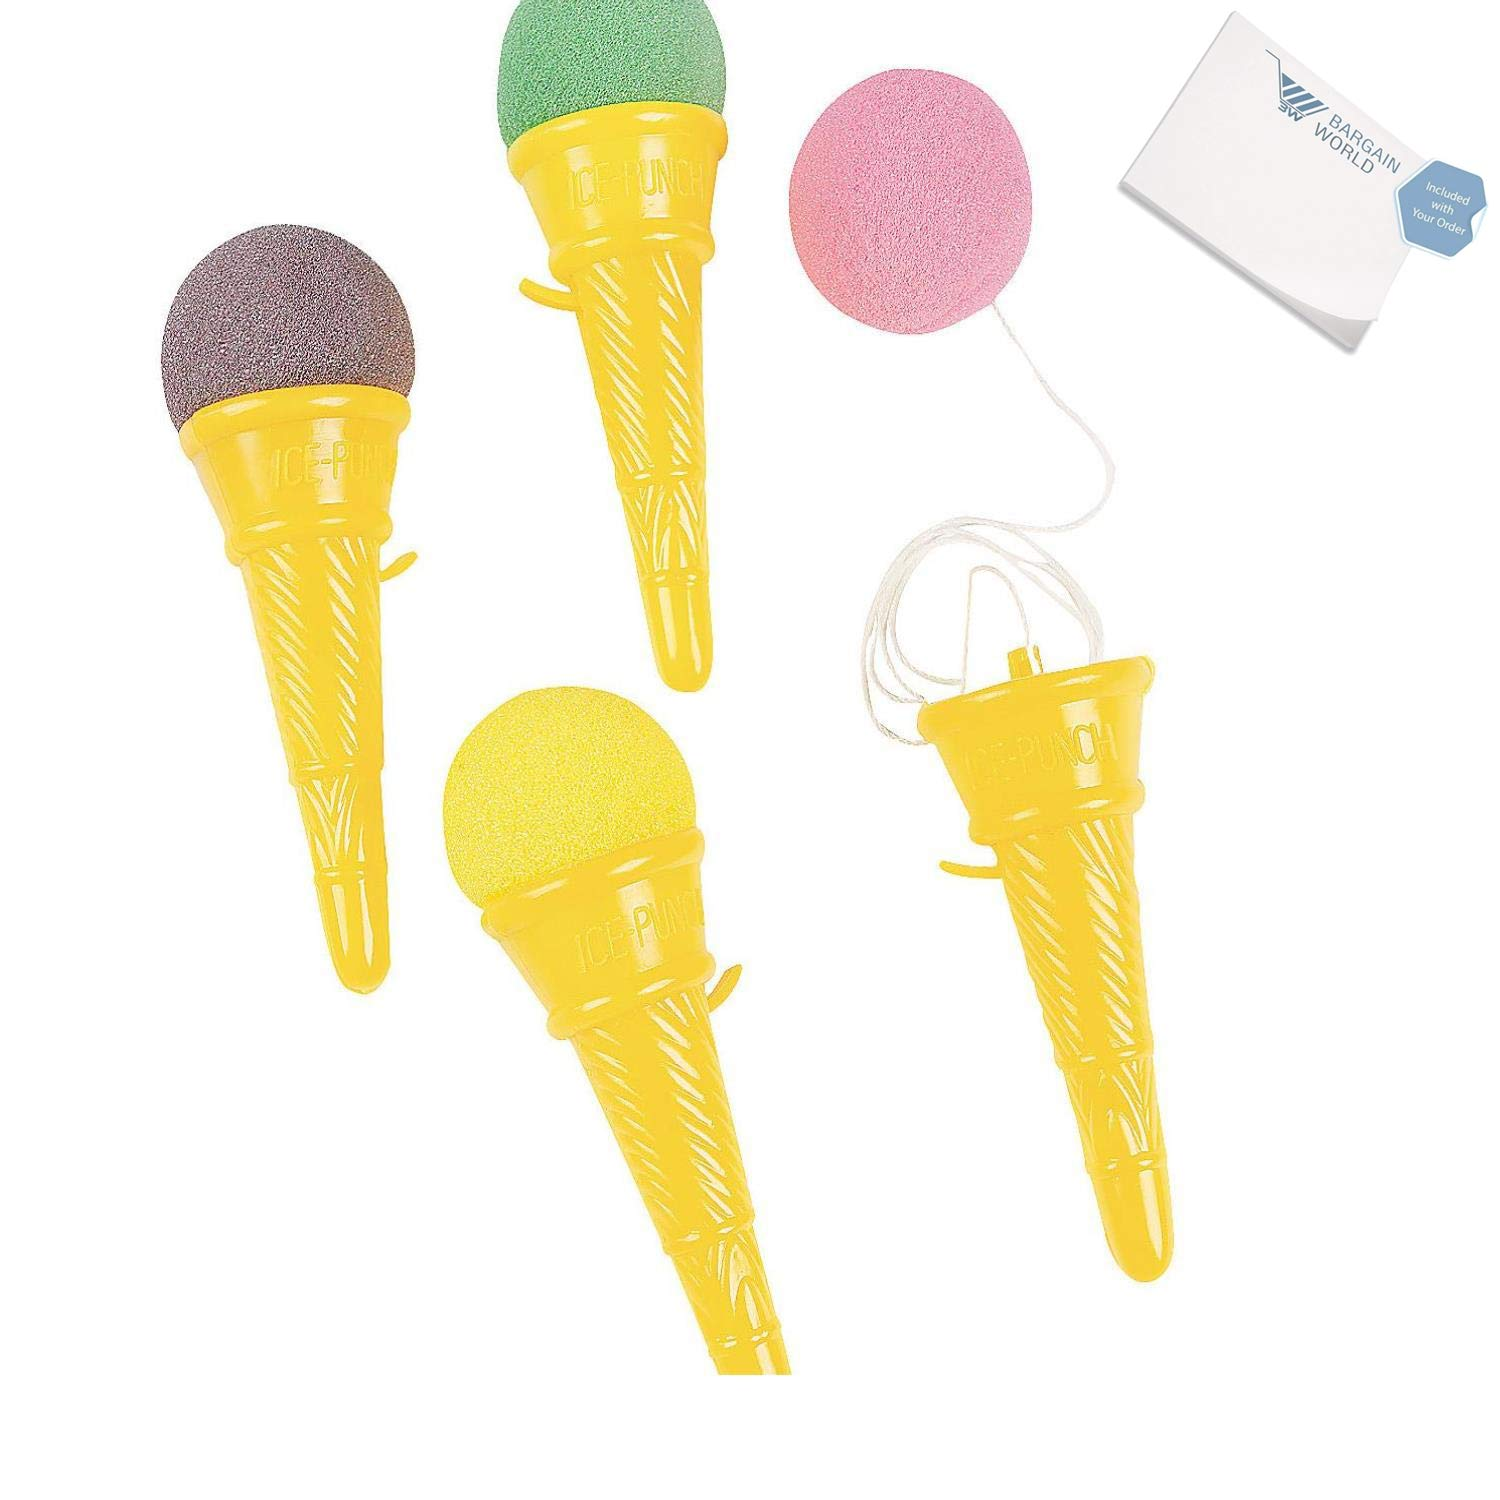 Bargain World Plastic Ice Cream Cone Shooters (With Sticky Notes)